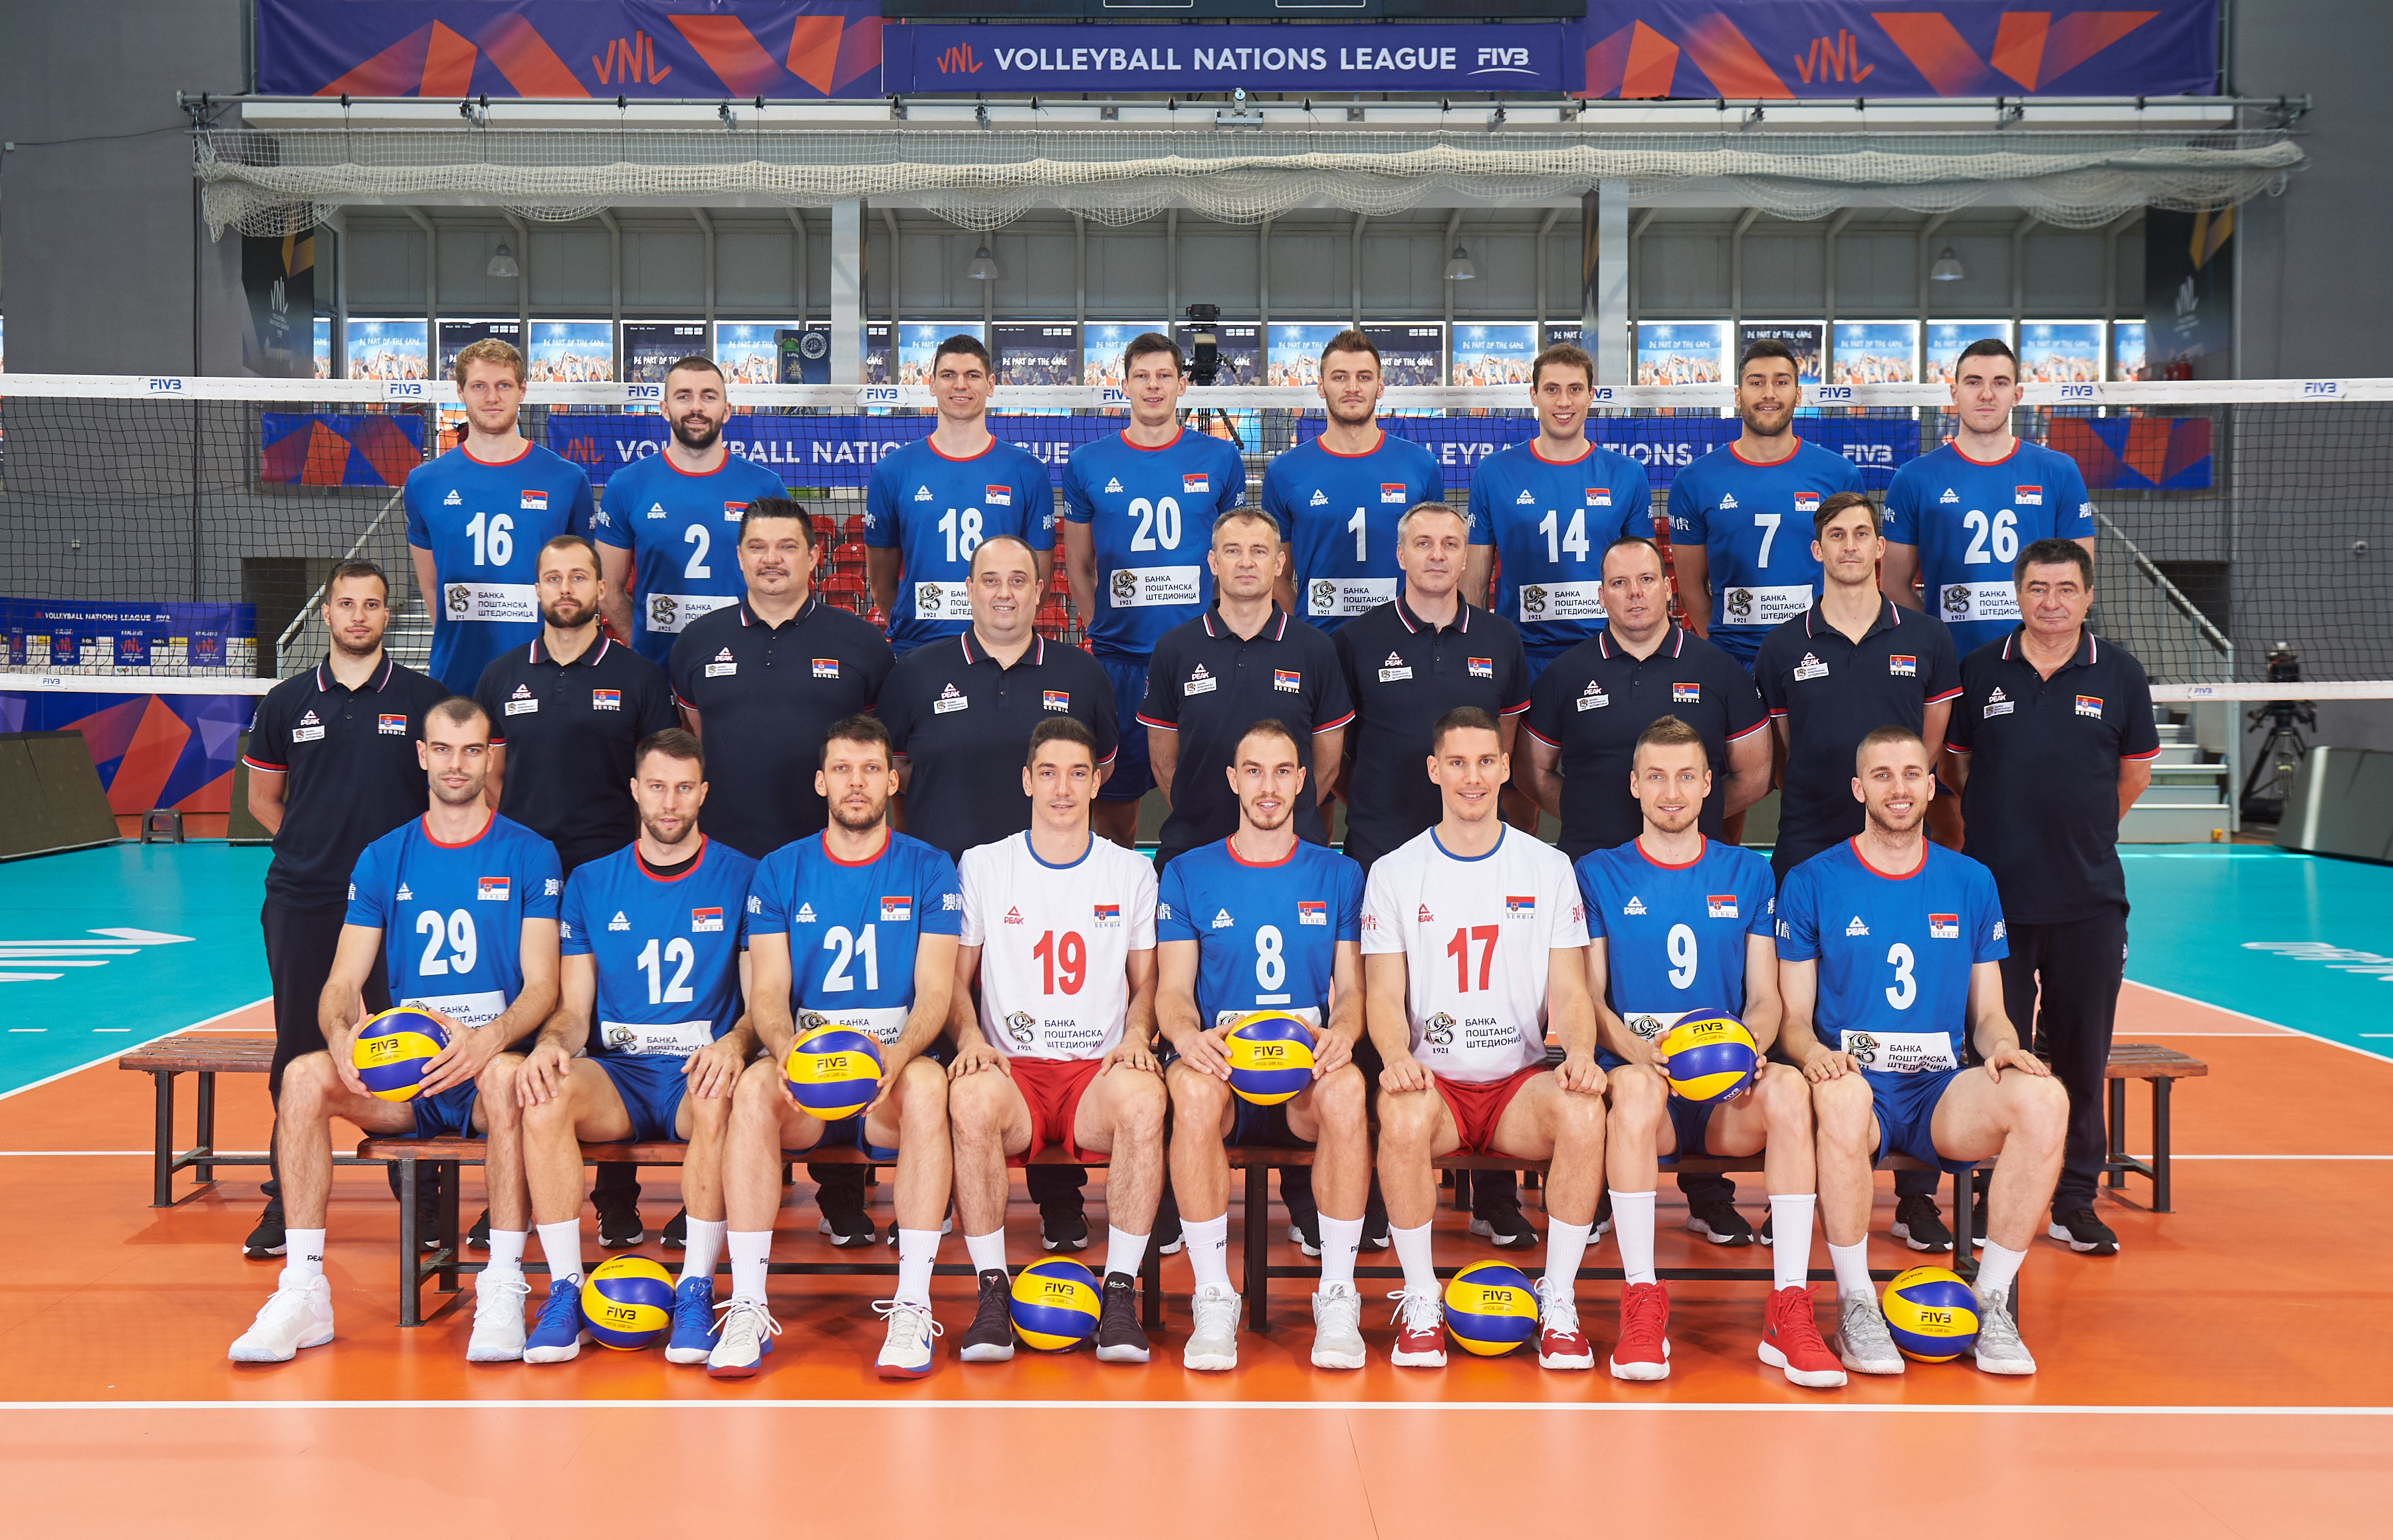 Overview Serbia Fivb Volleyball Men S World Championship Italy And Bulgaria 2018